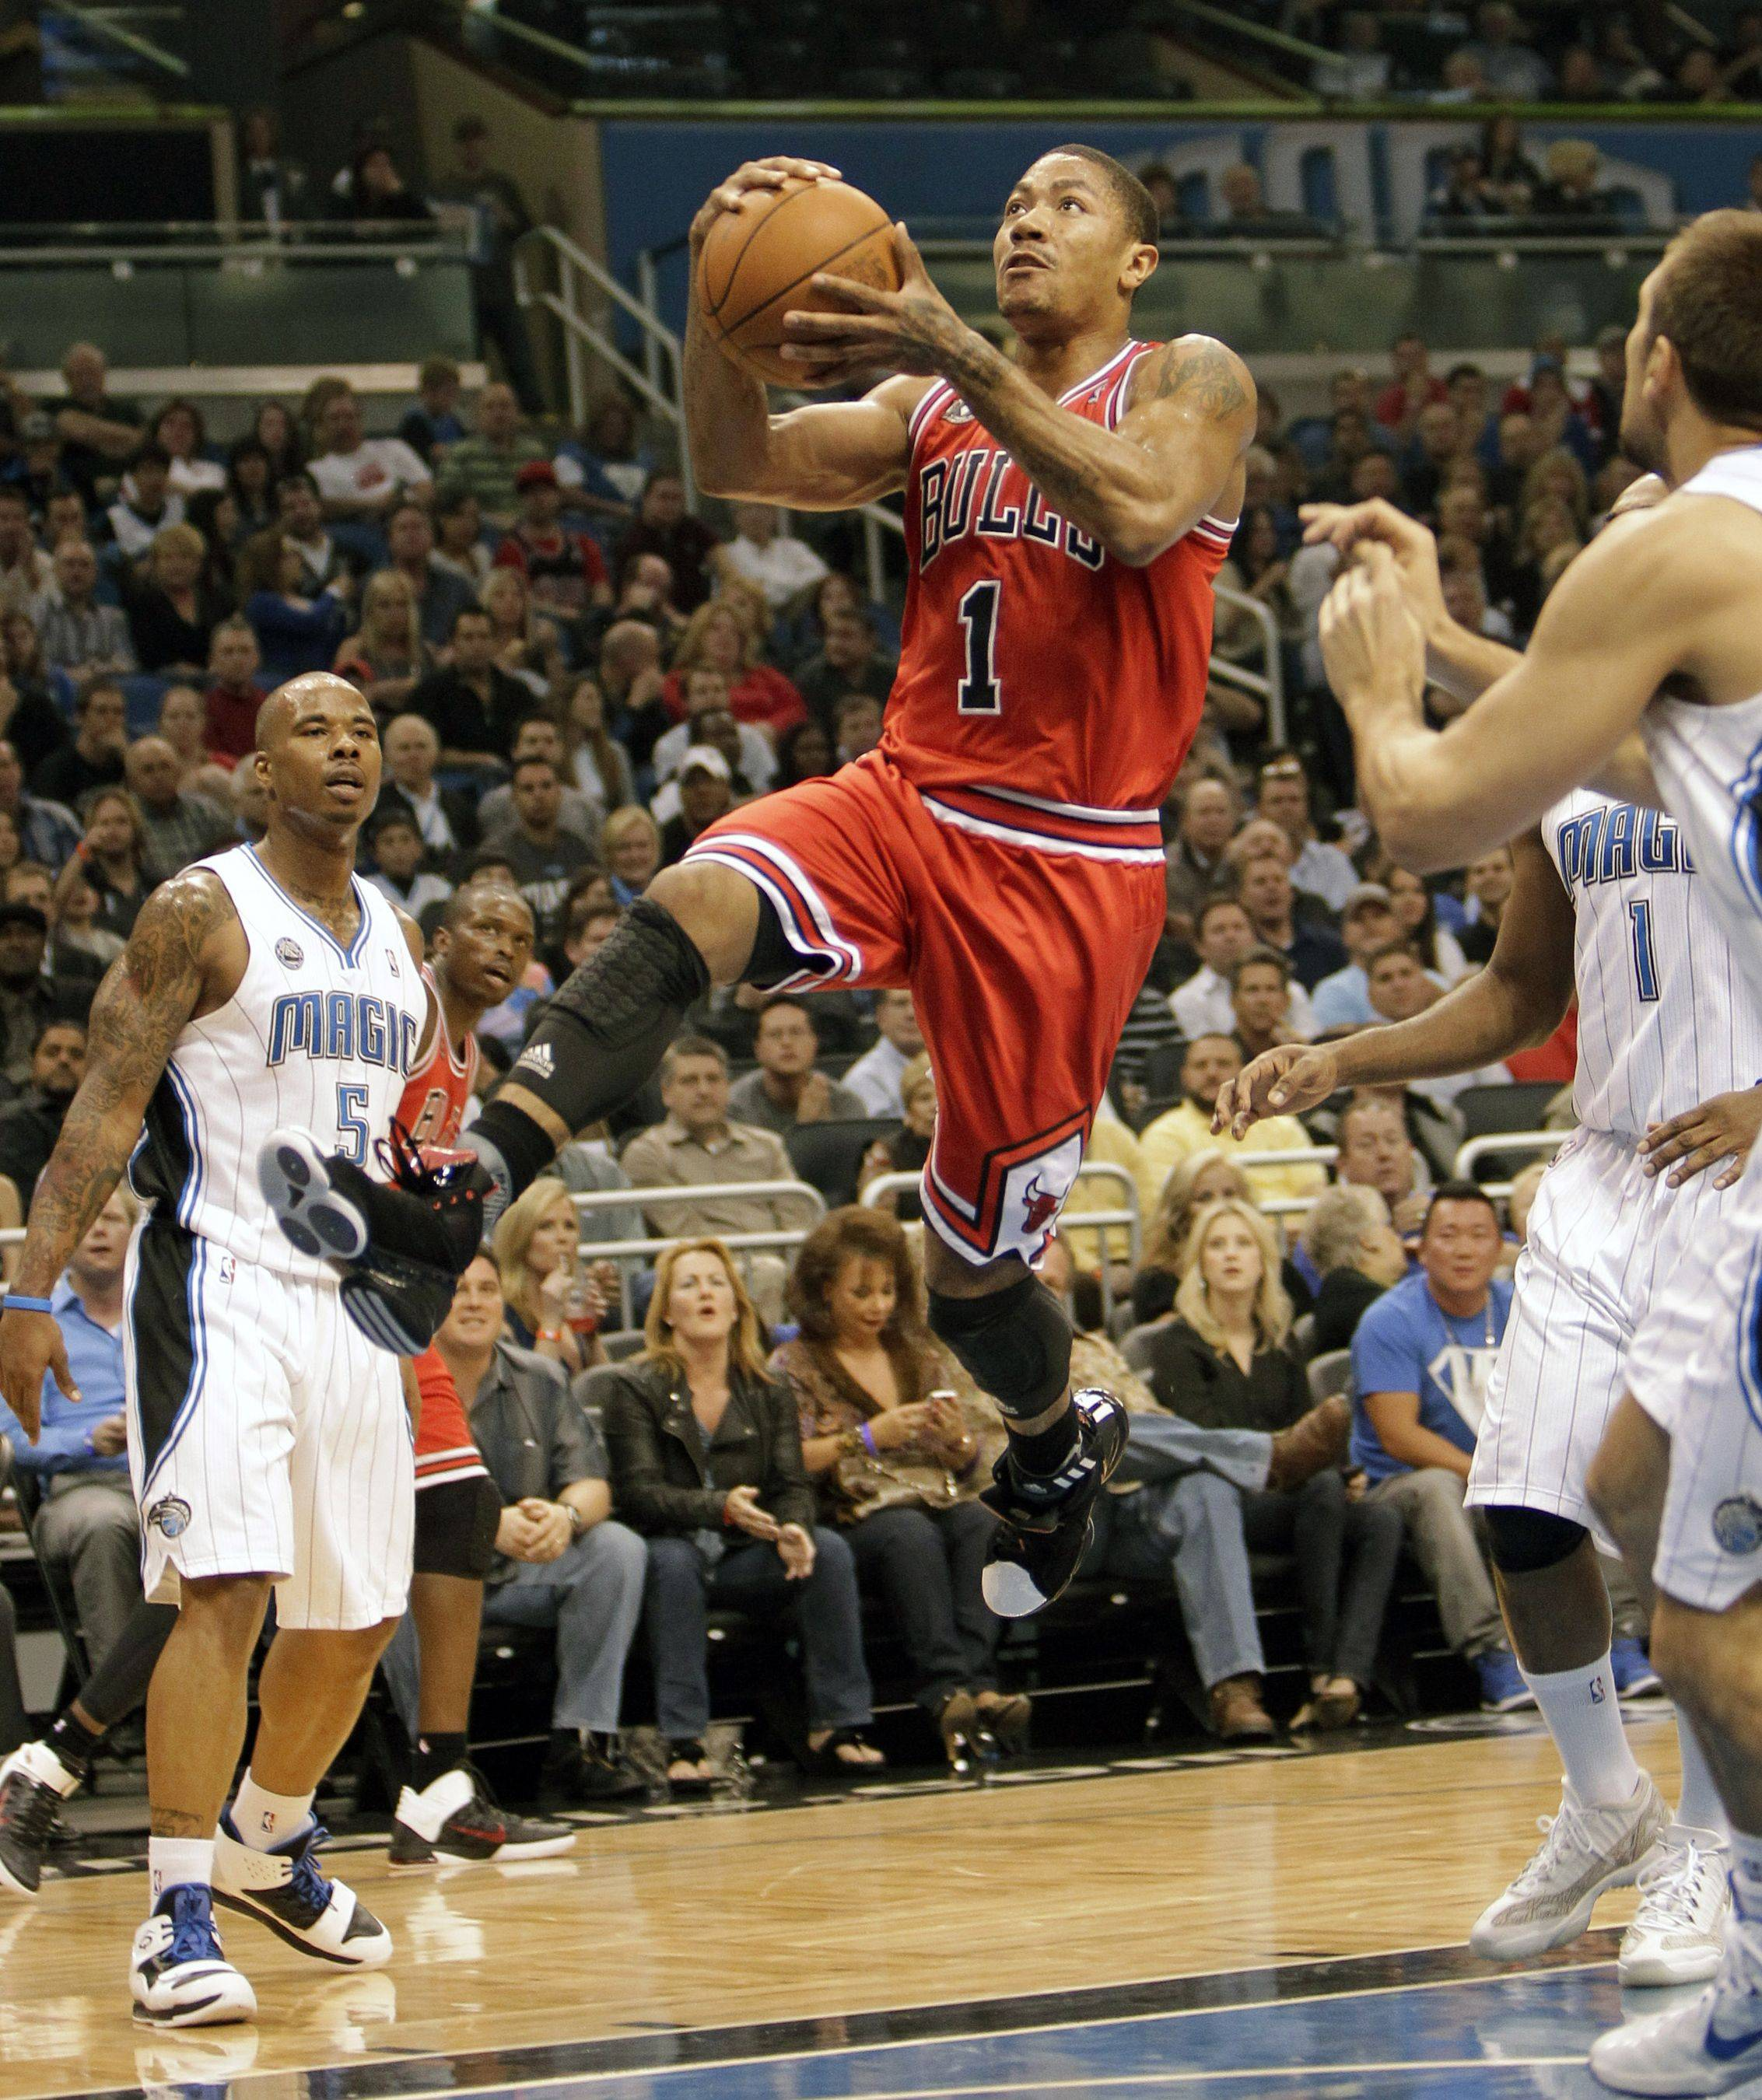 Chicago Bulls' Derrick Rose (1) gets off a shot between Orlando Magic's Quentin Richardson (5) and Ryan Anderson, right, during the first half of an NBA basketball game in Orlando, Fla., Friday, March 4, 2011.